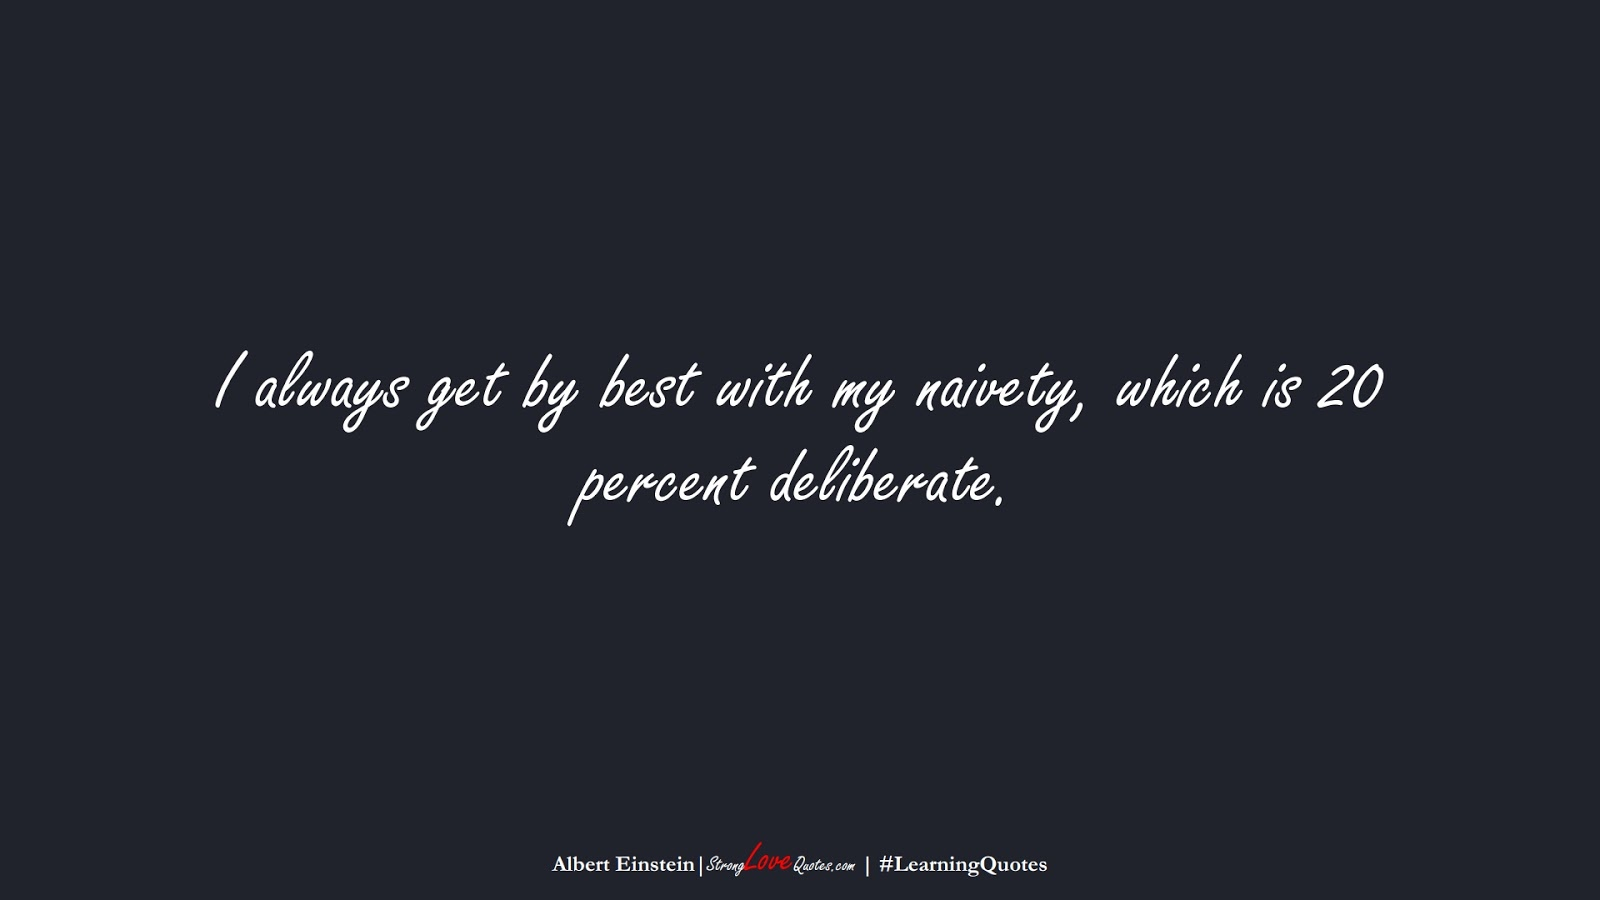 I always get by best with my naivety, which is 20 percent deliberate. (Albert Einstein);  #LearningQuotes